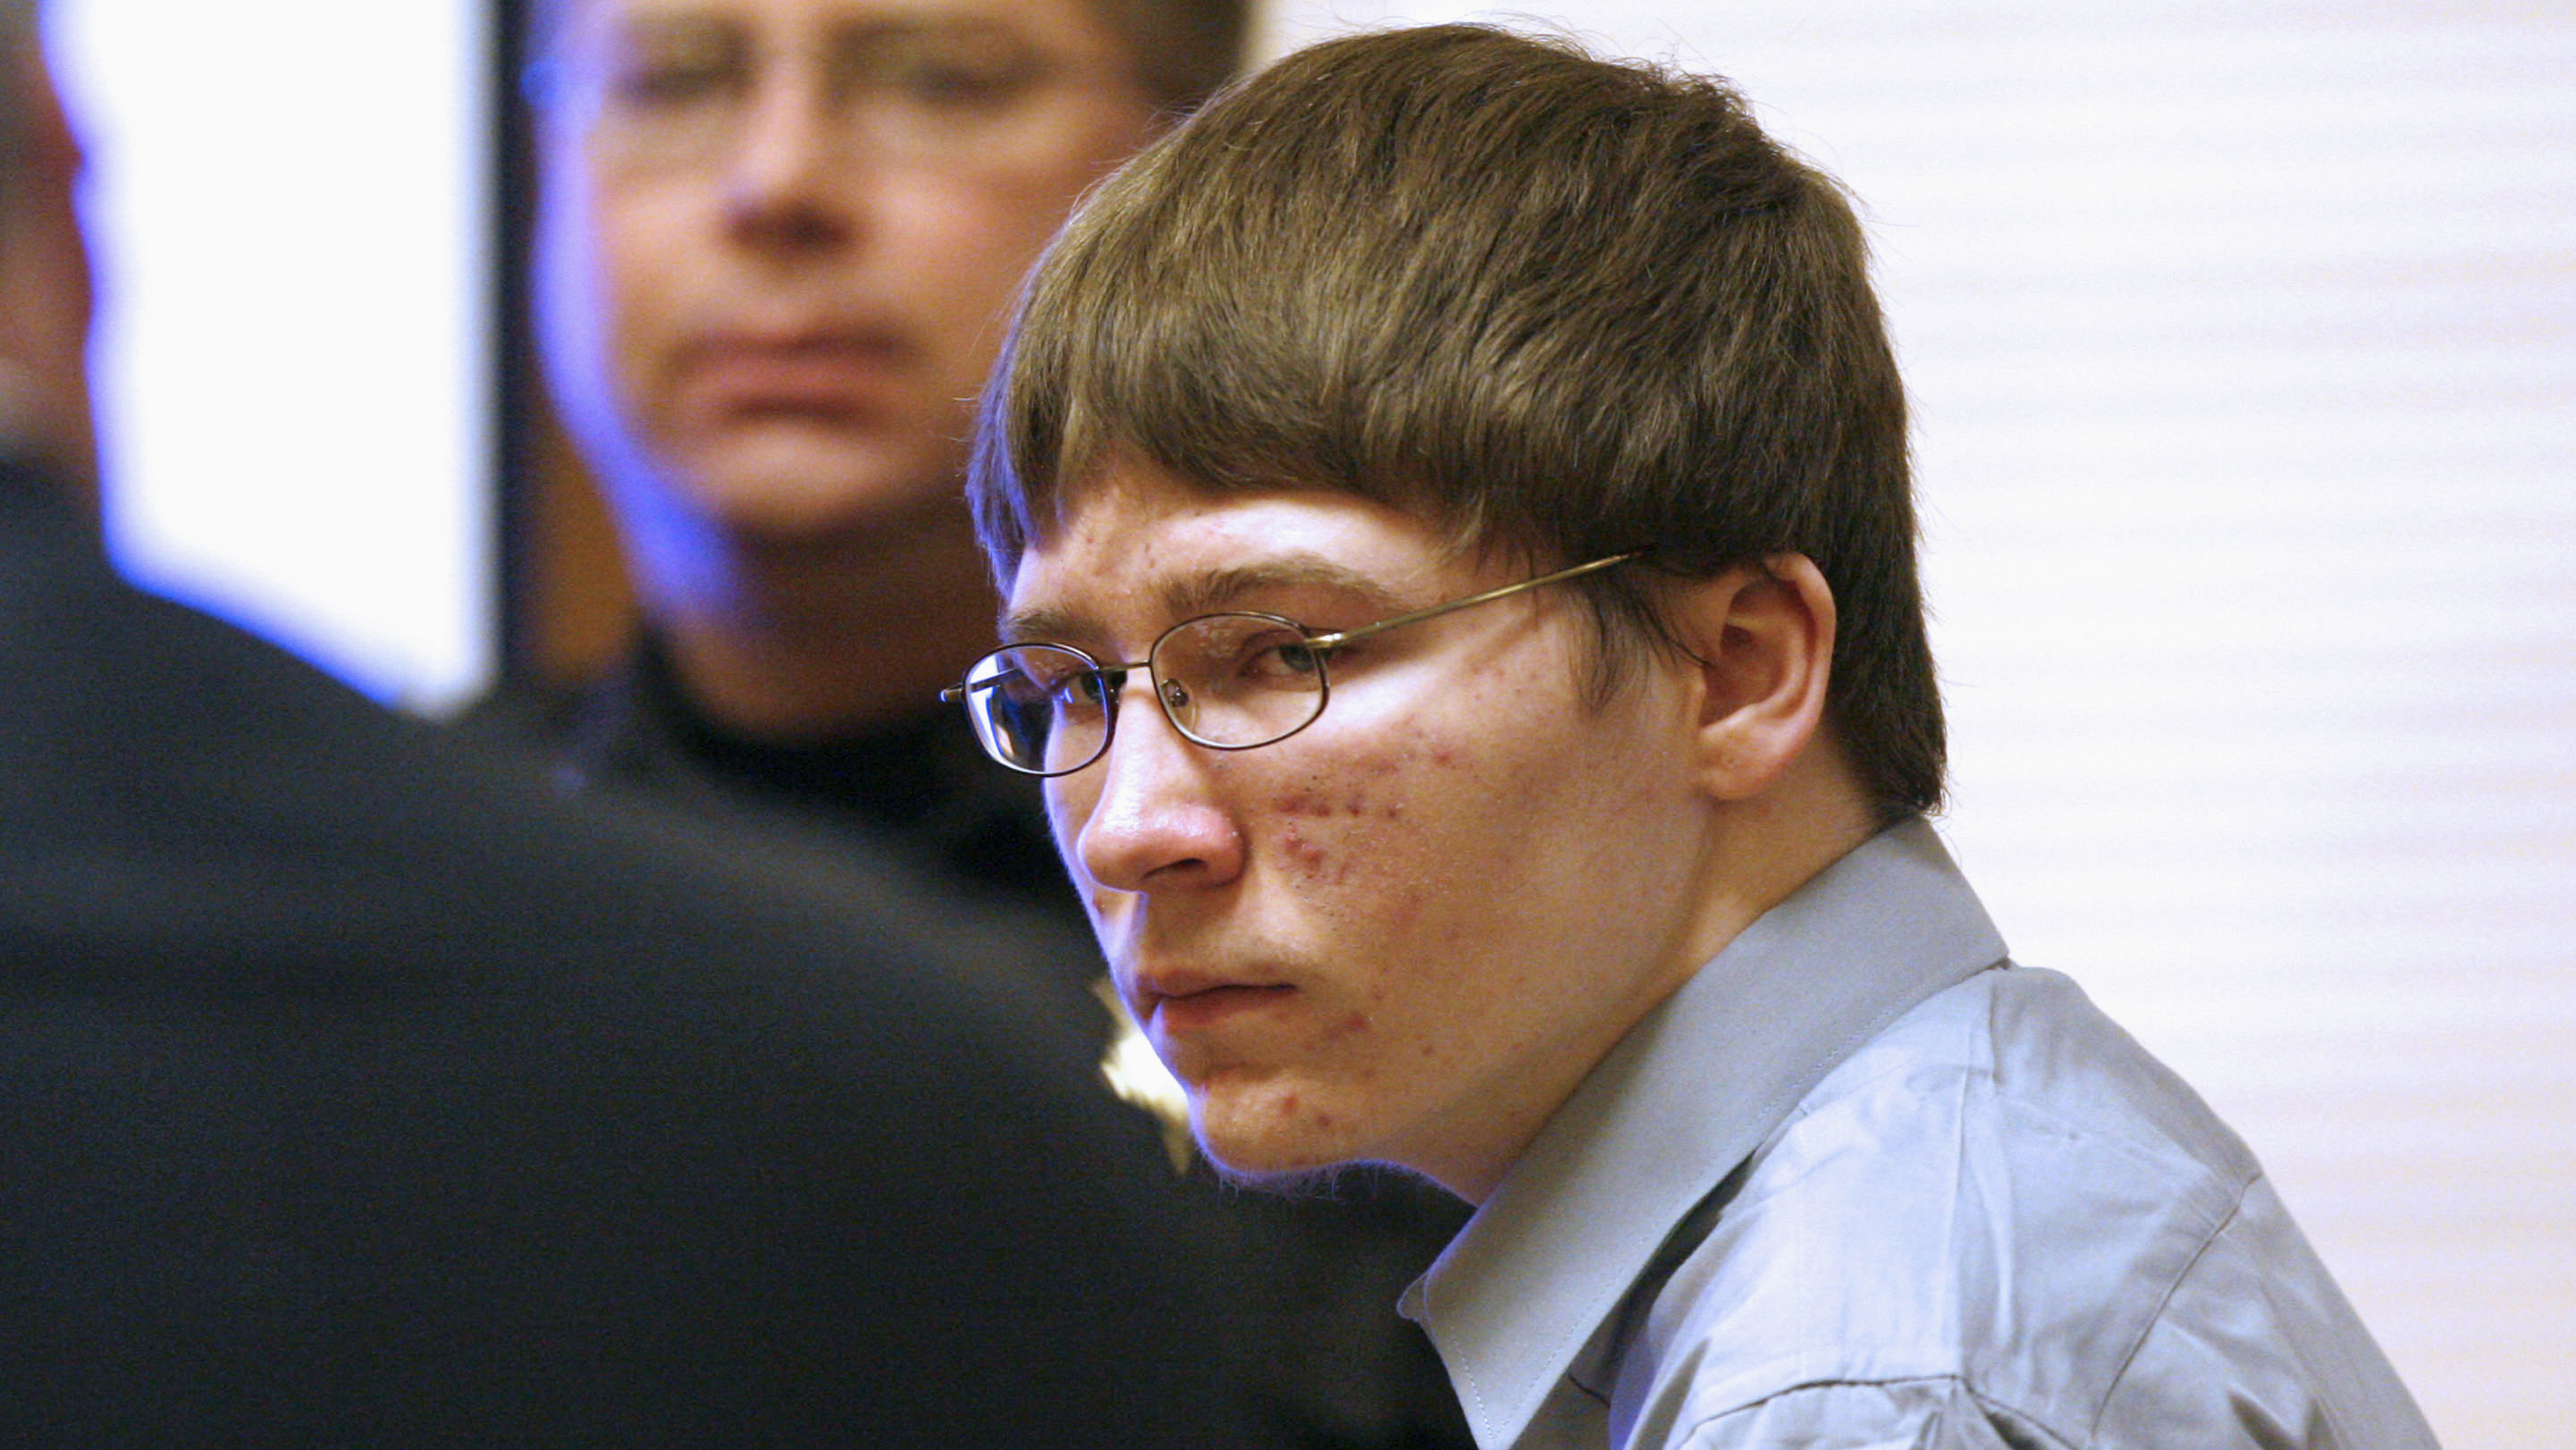 Brendan Dassey: Why Do People Confess to Crimes They Later Say They Didn't Commit?